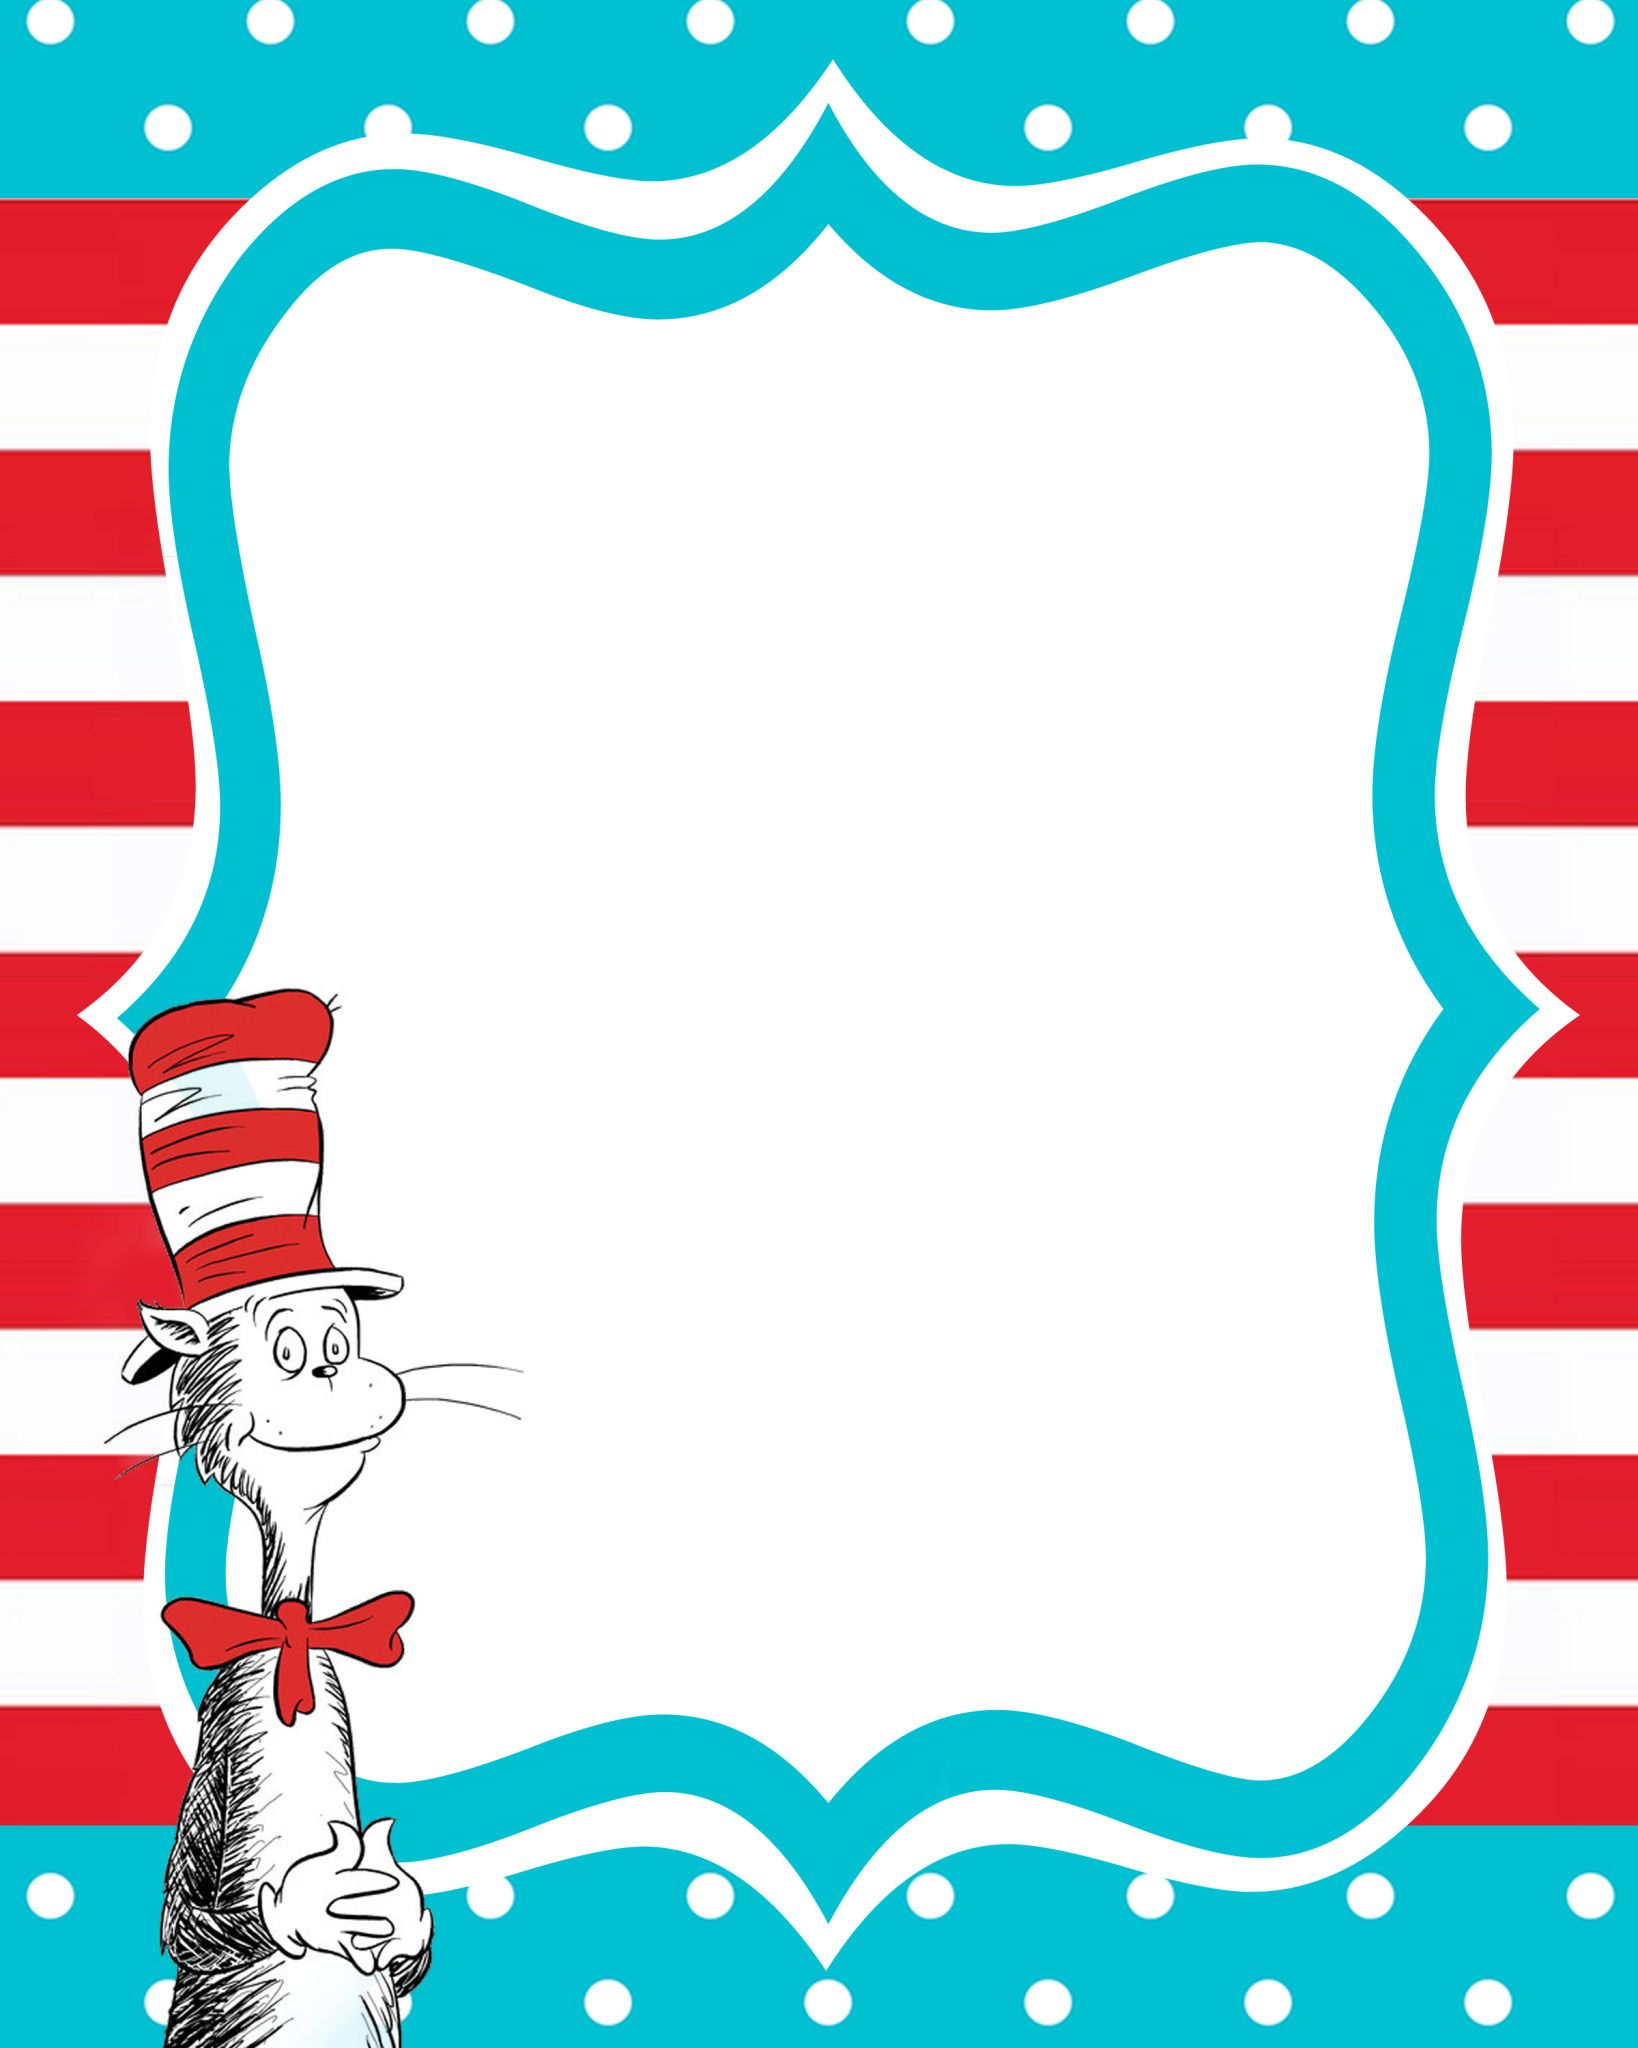 Dr Seuss Invitation Black WITH Cat lollyjane.com.jpg - File Shared ...